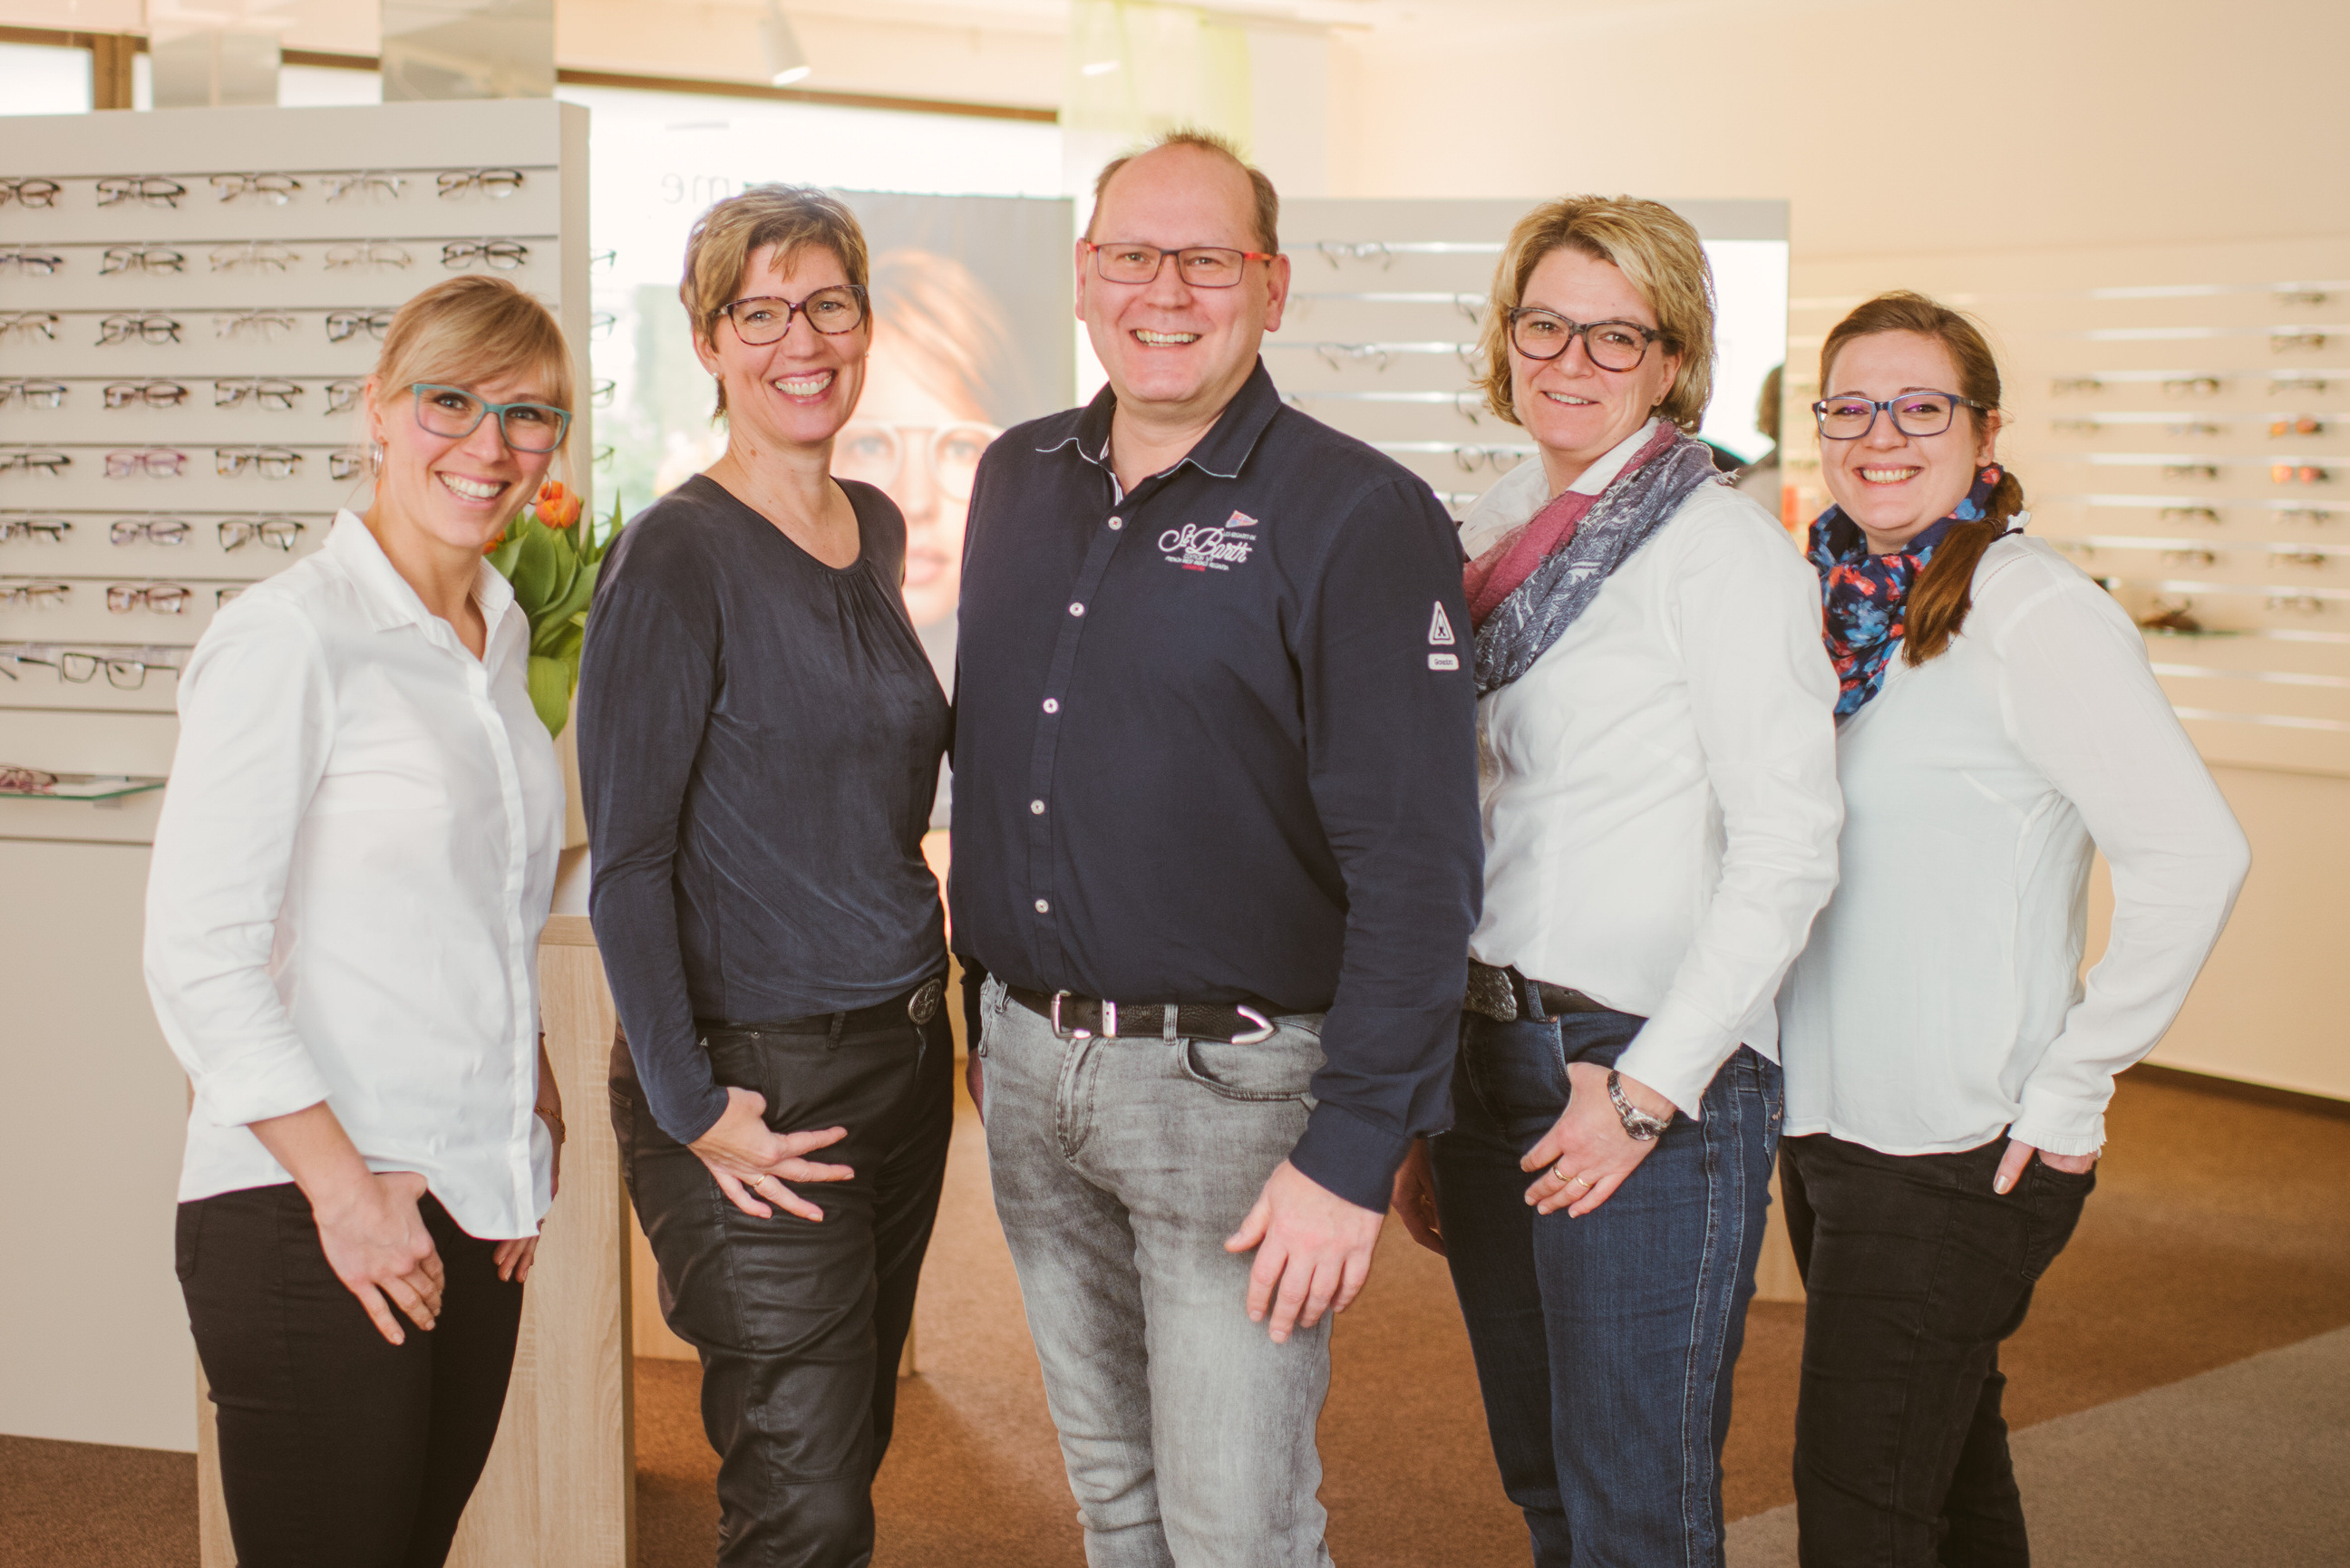 Optik Meyer Bardowick - Teambild 2